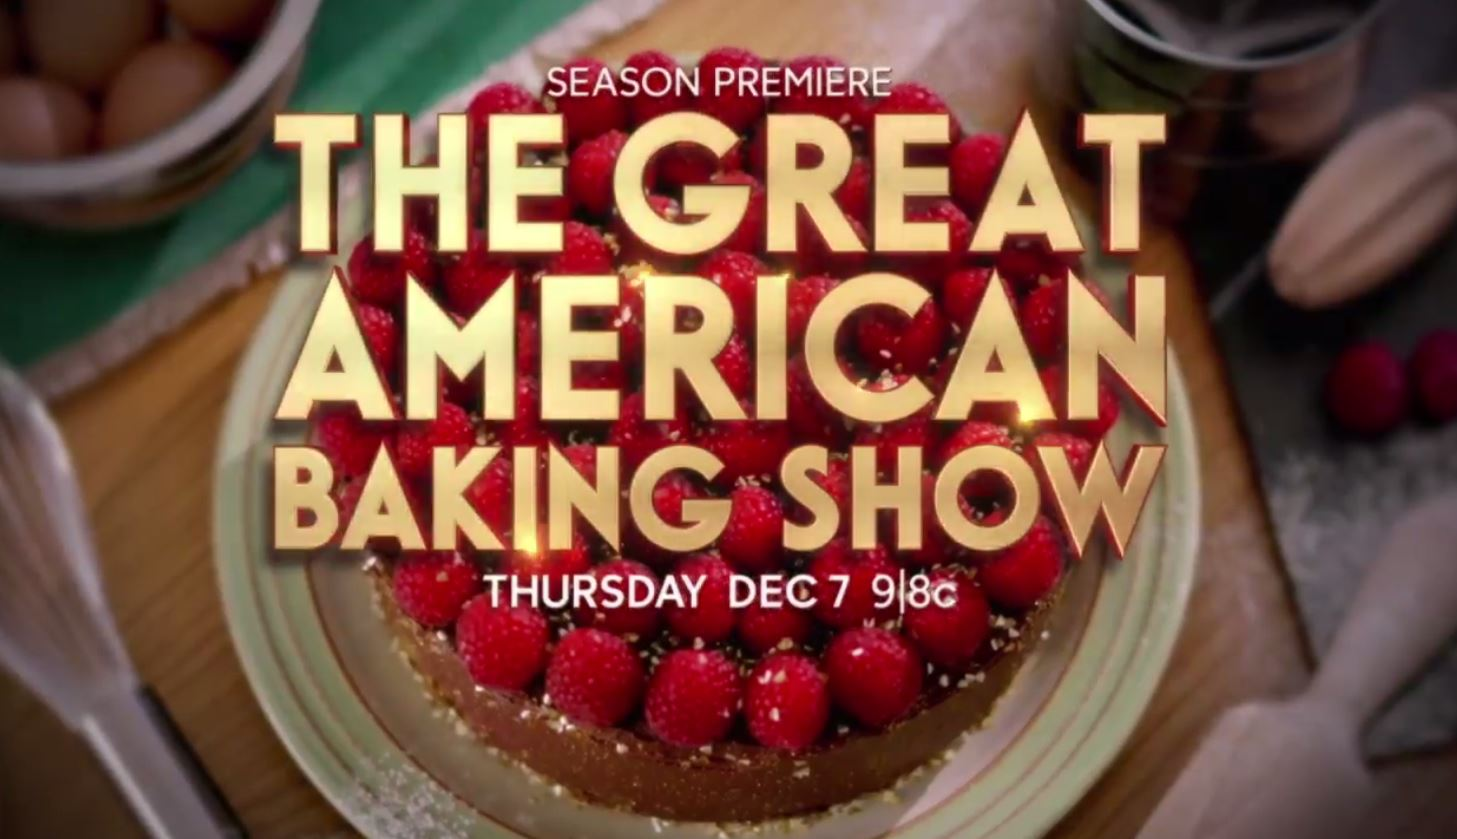 Great American Baking Show